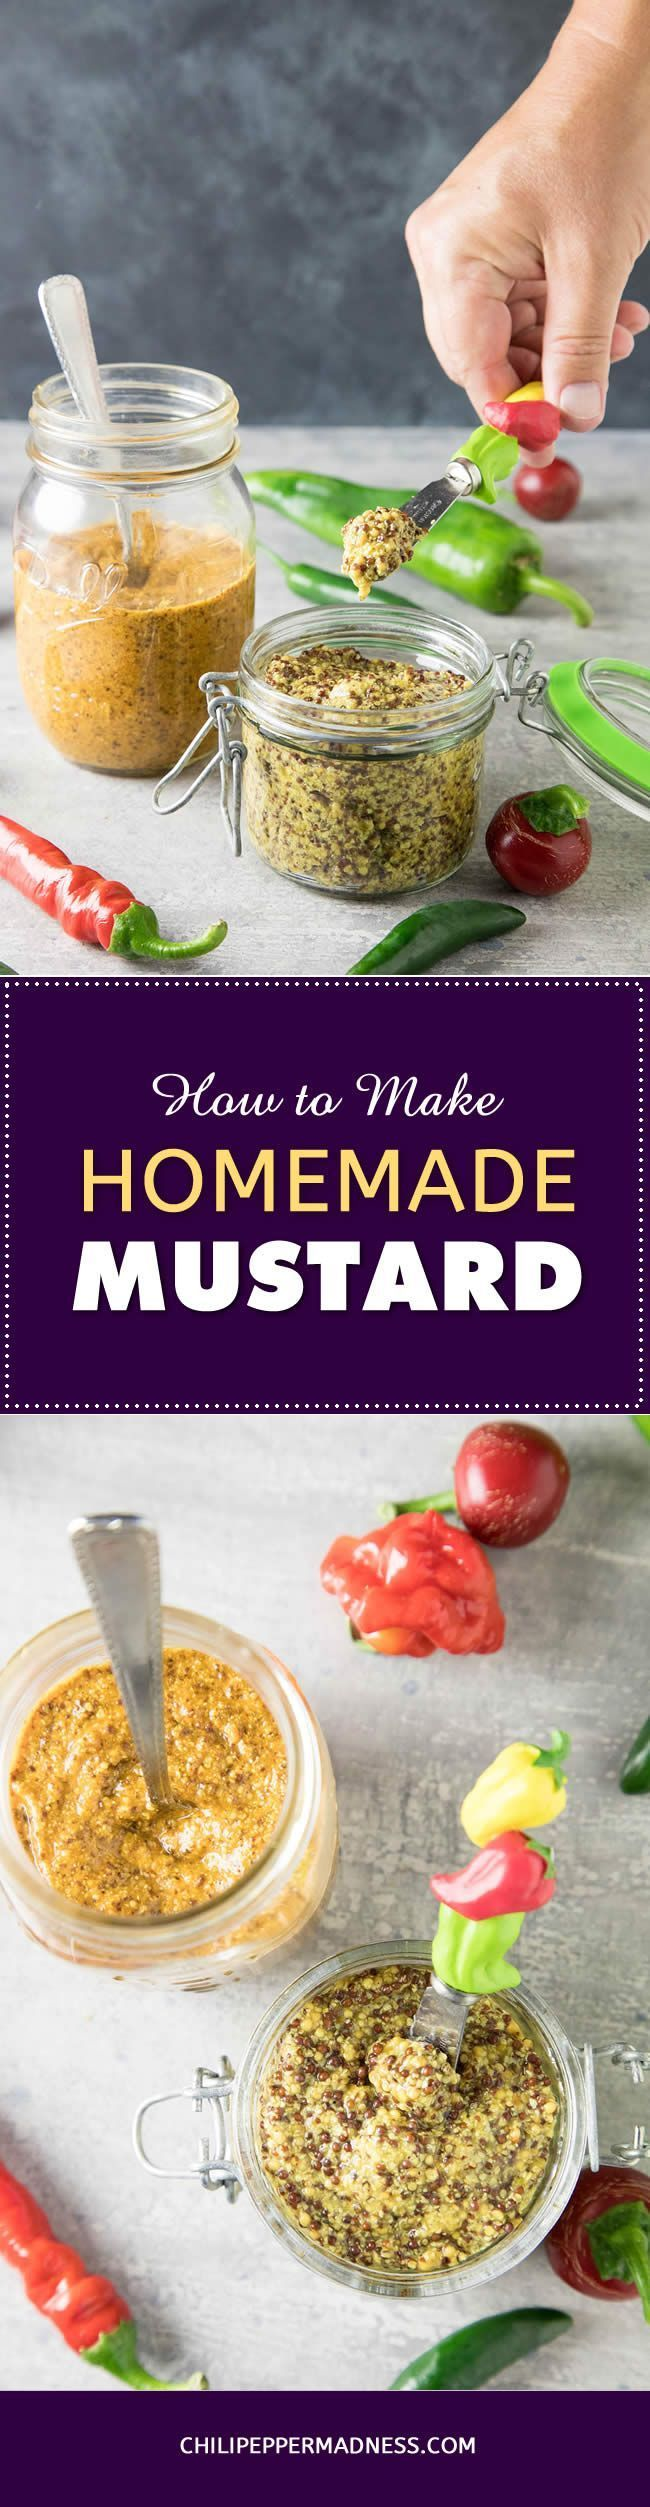 How to Make Homemade Mustard – the Basics - Ever wonder how to make your own mustard? It's actually quite easy to do, with only a few simple steps. Here is how to make mustard at home.